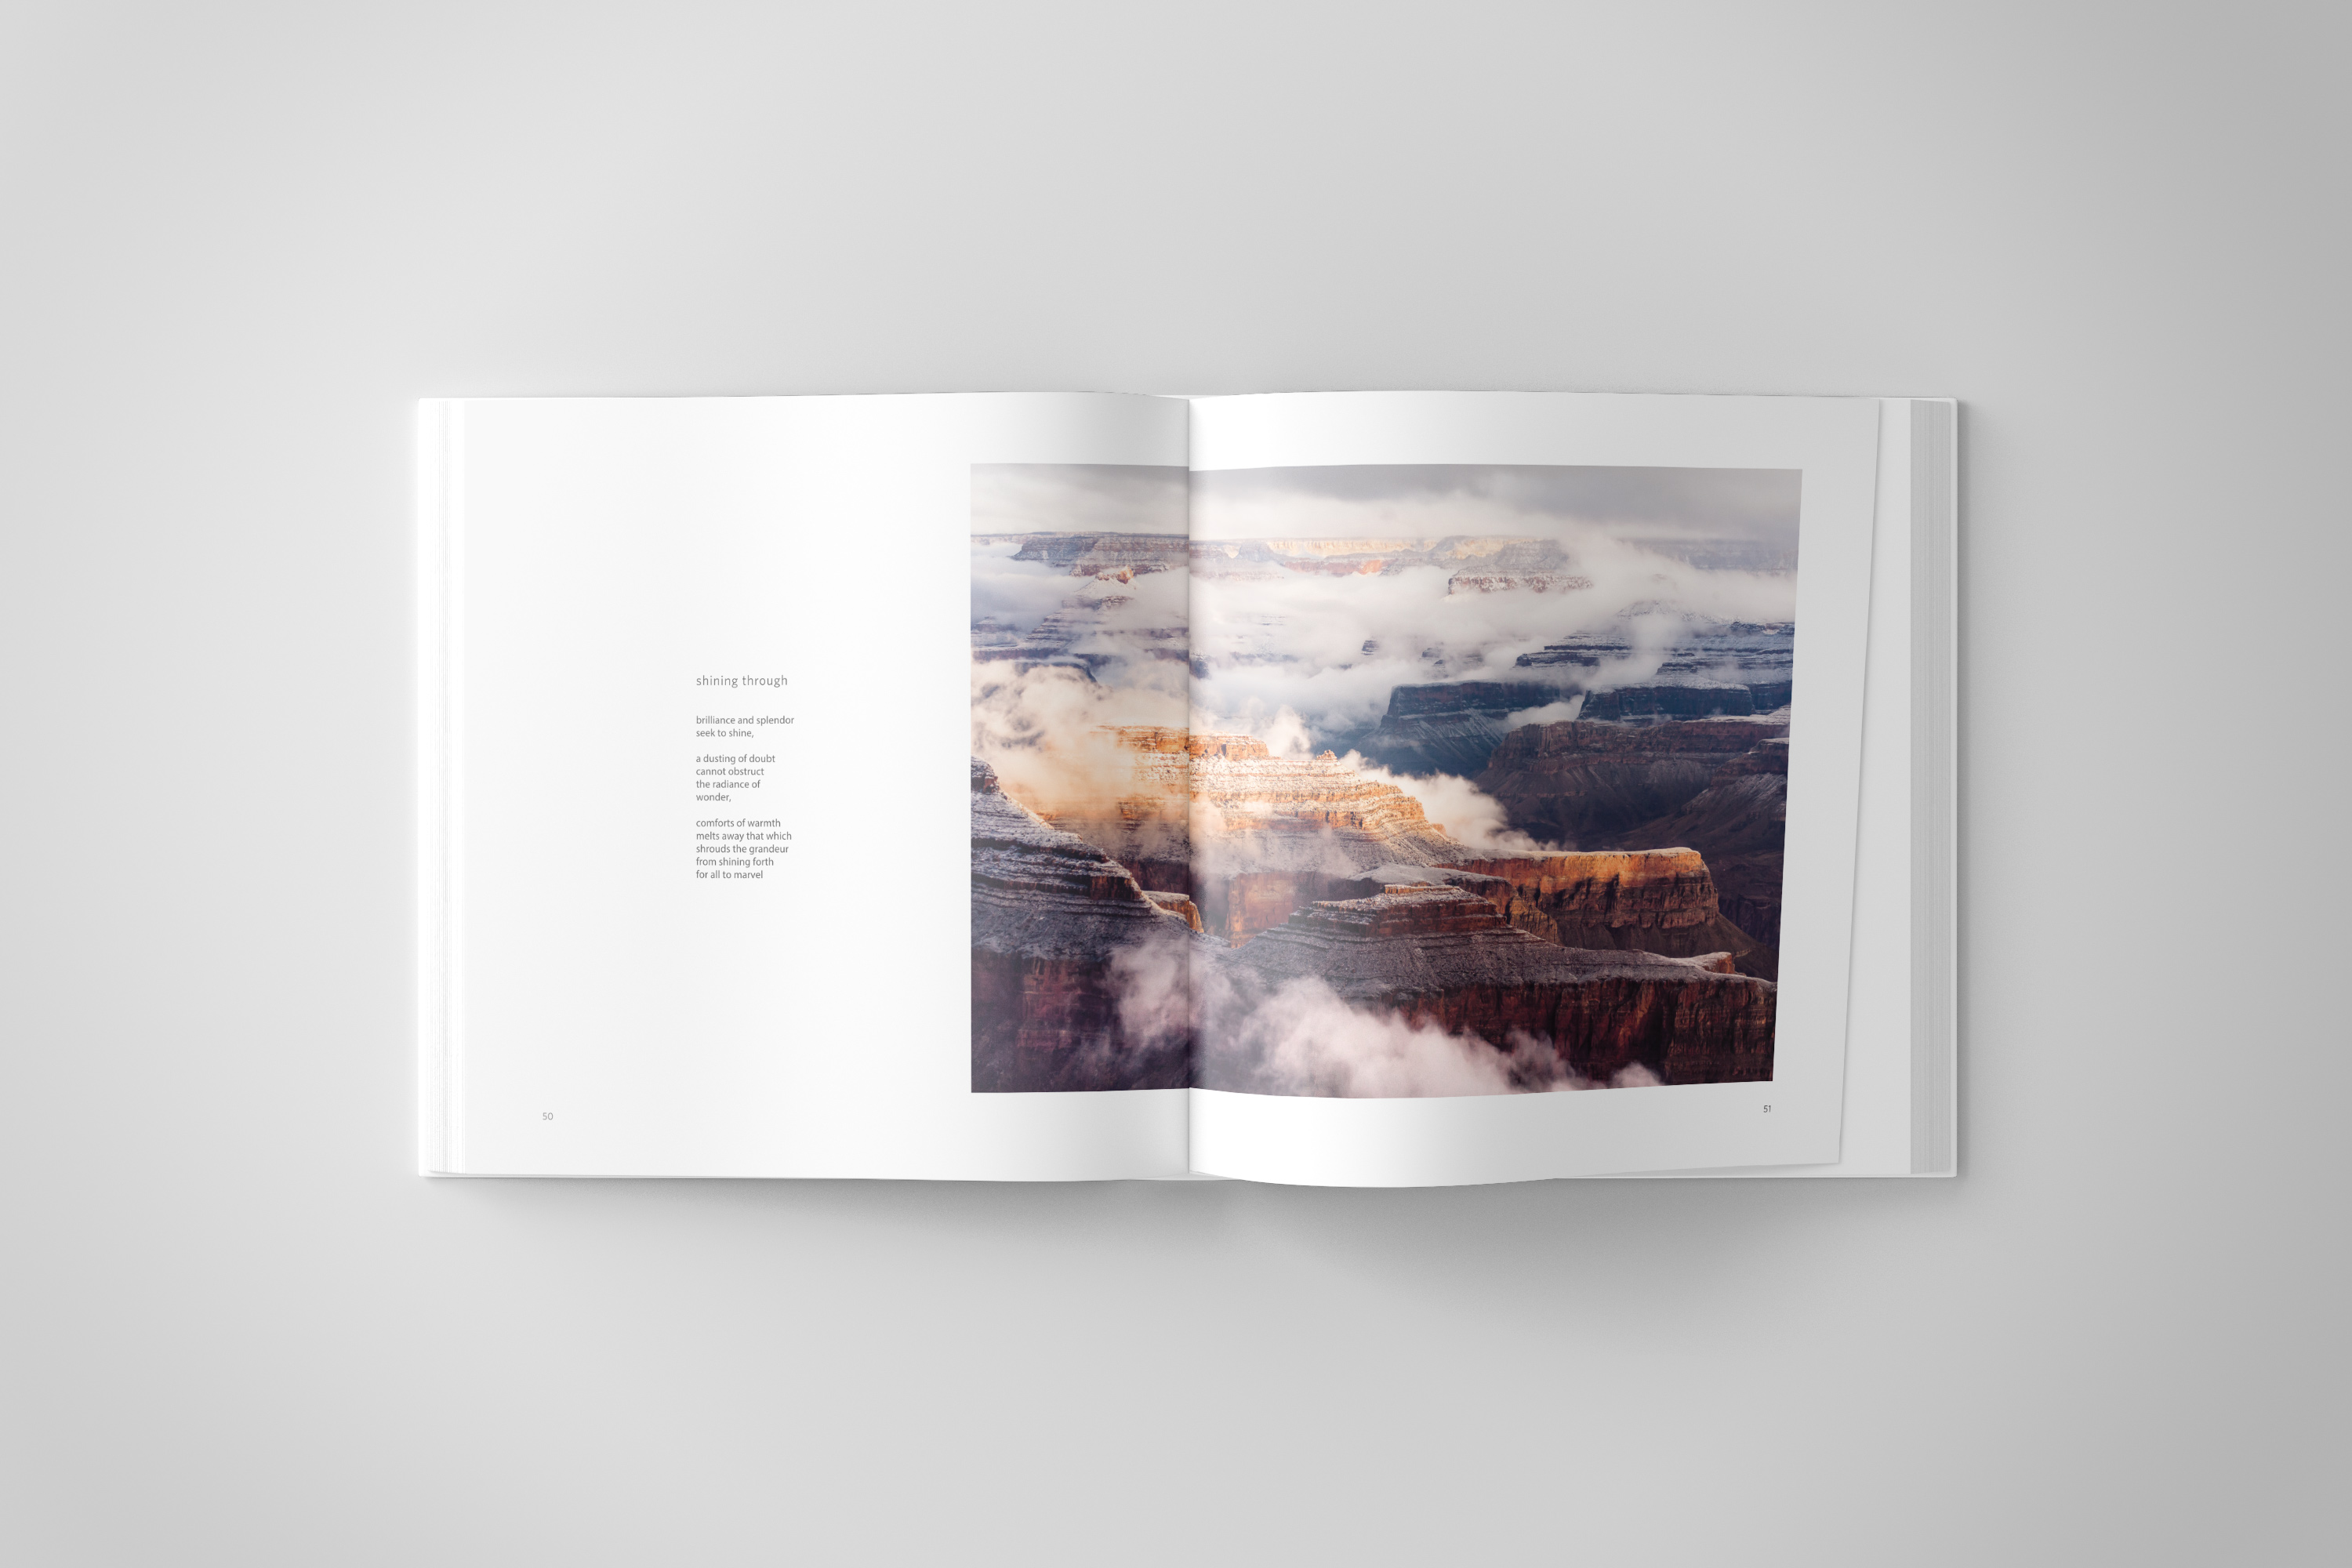 Inside spread with Grand Canyon Image and Poem